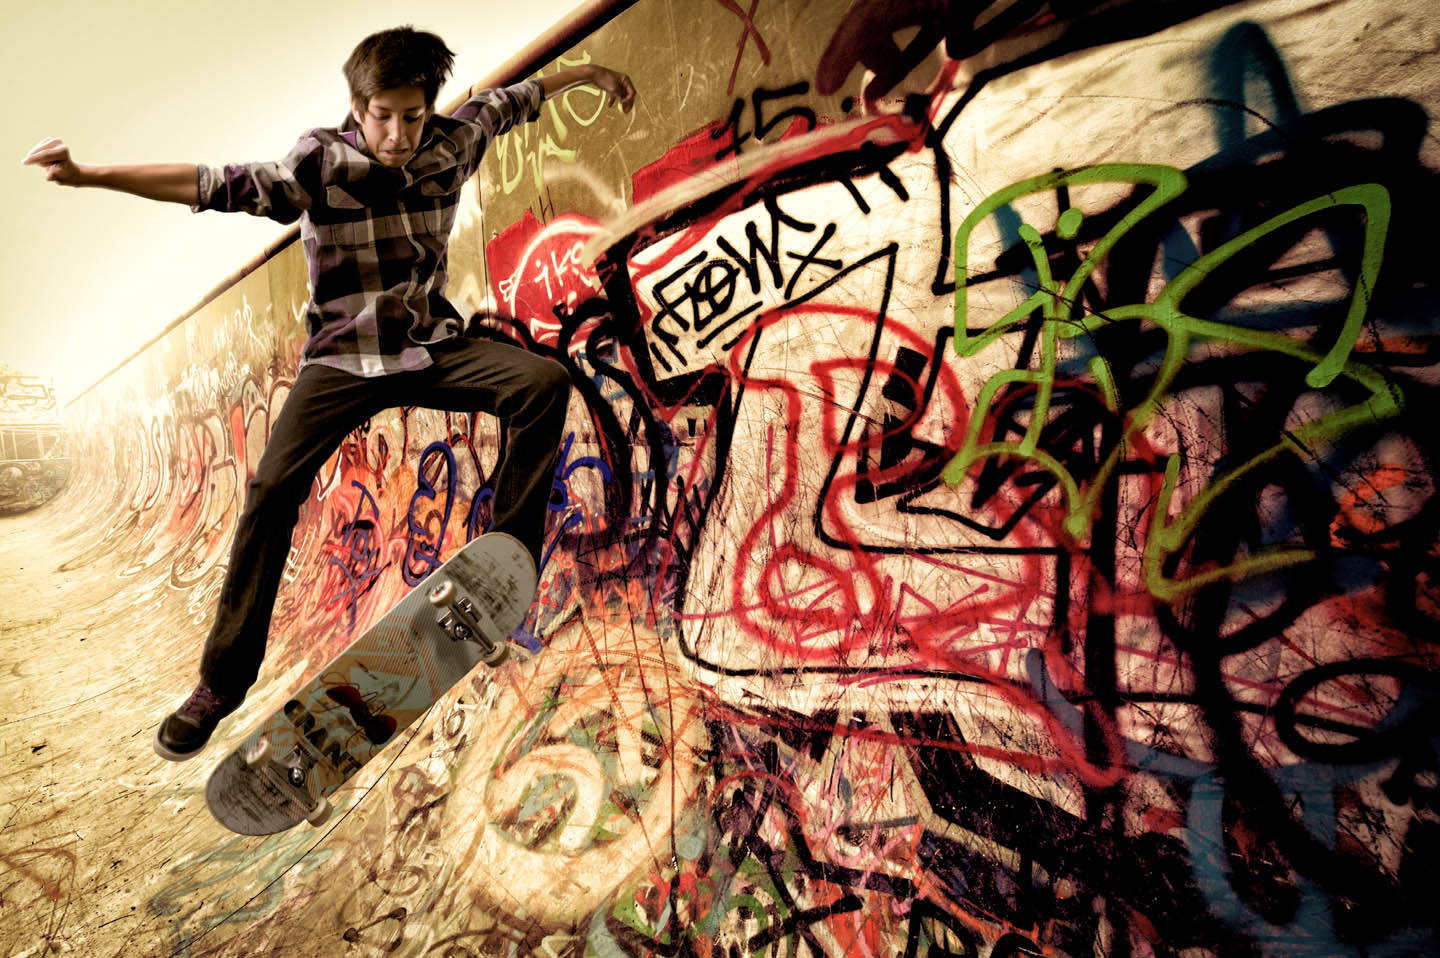 Skateboarder photoshopped into a graffiti laced half pipe